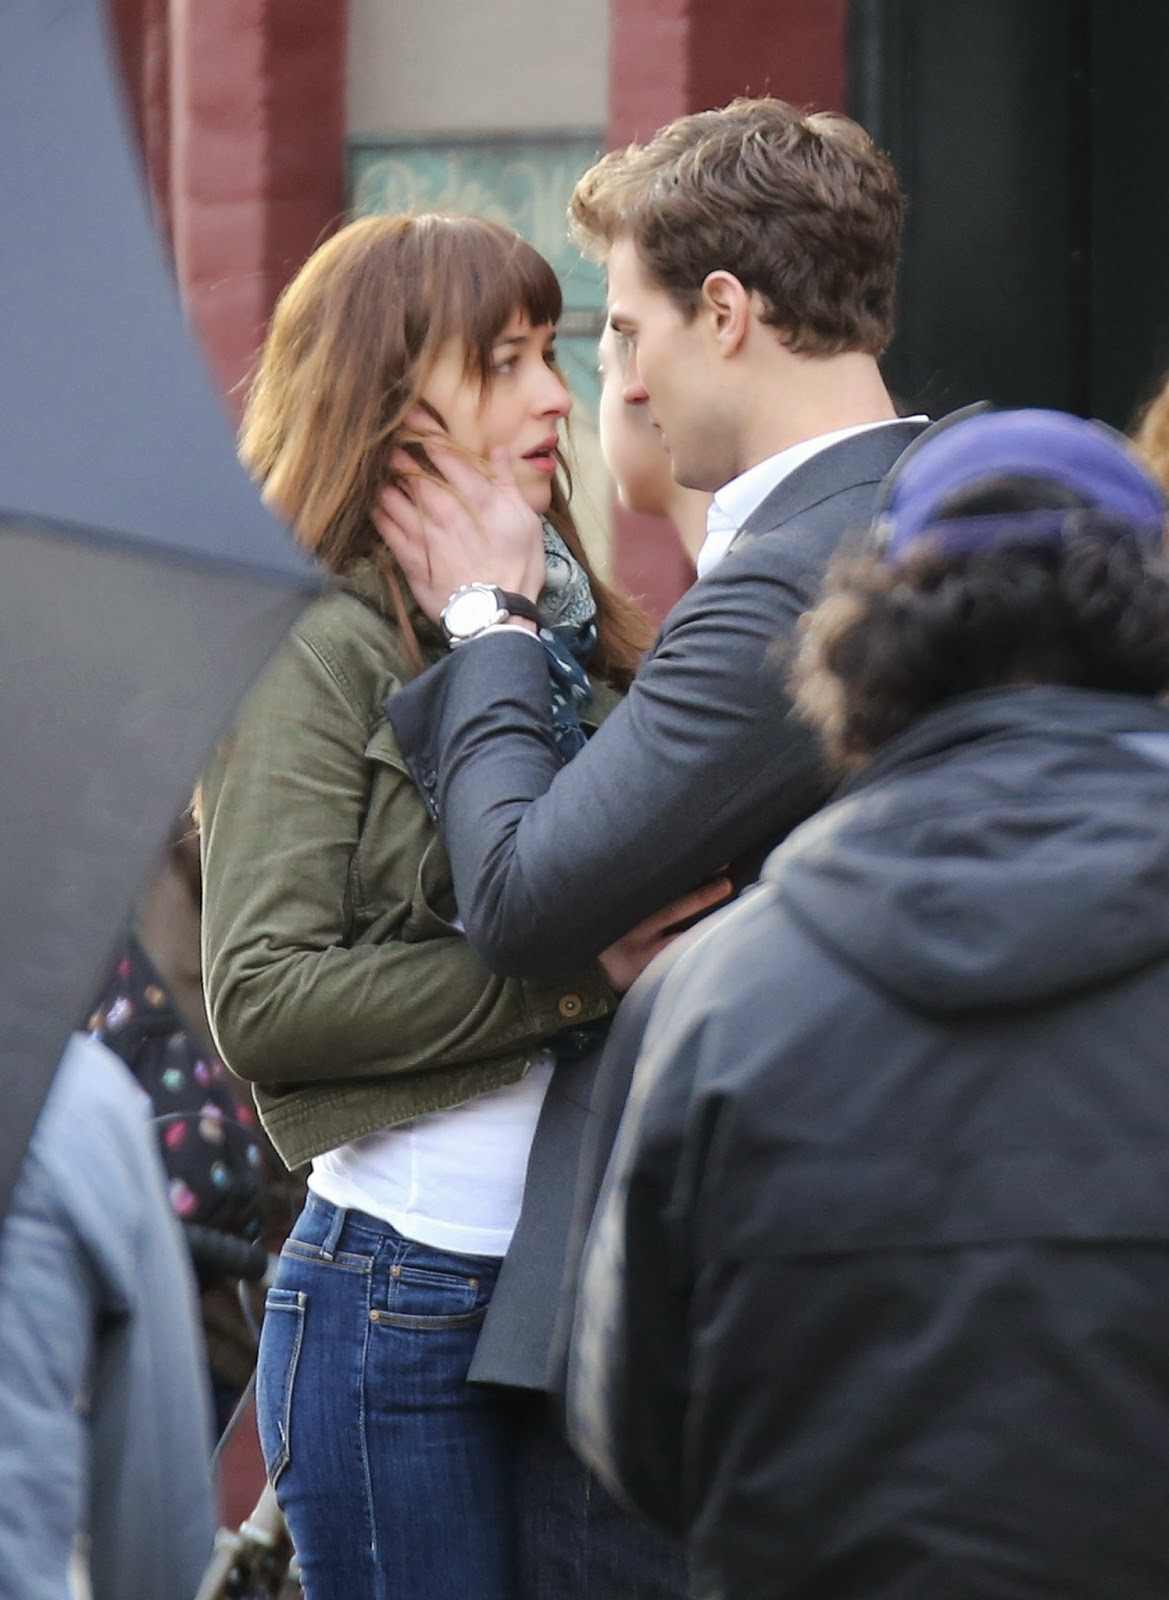 Fifty shades of grey the movie on 2015 ranneveryday for Fifty shades od gray